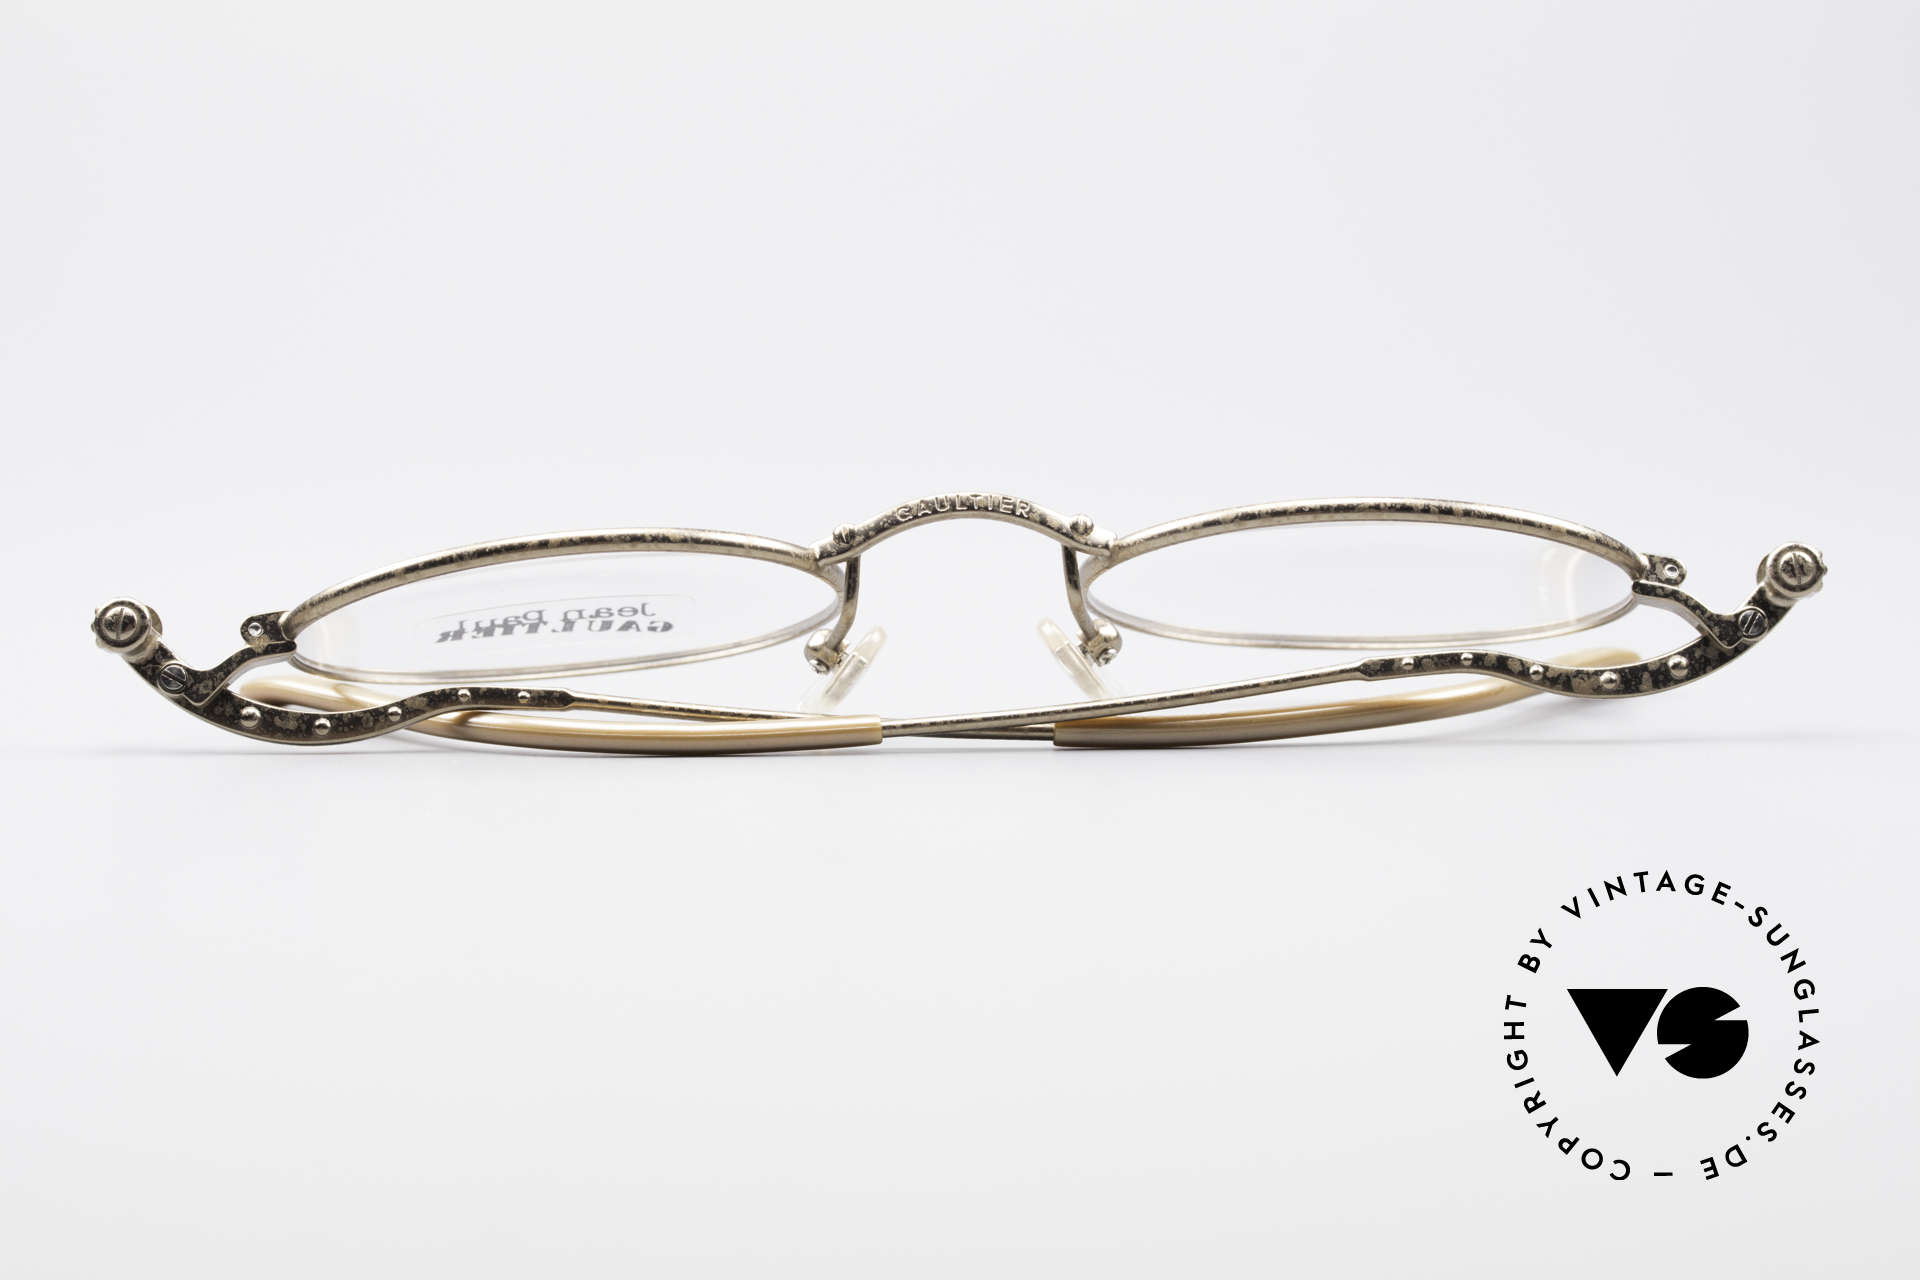 Jean Paul Gaultier 55-6105 Oval Vintage Eyeglass-Frame, the frame is made for optical or sun lenses optionally, Made for Men and Women